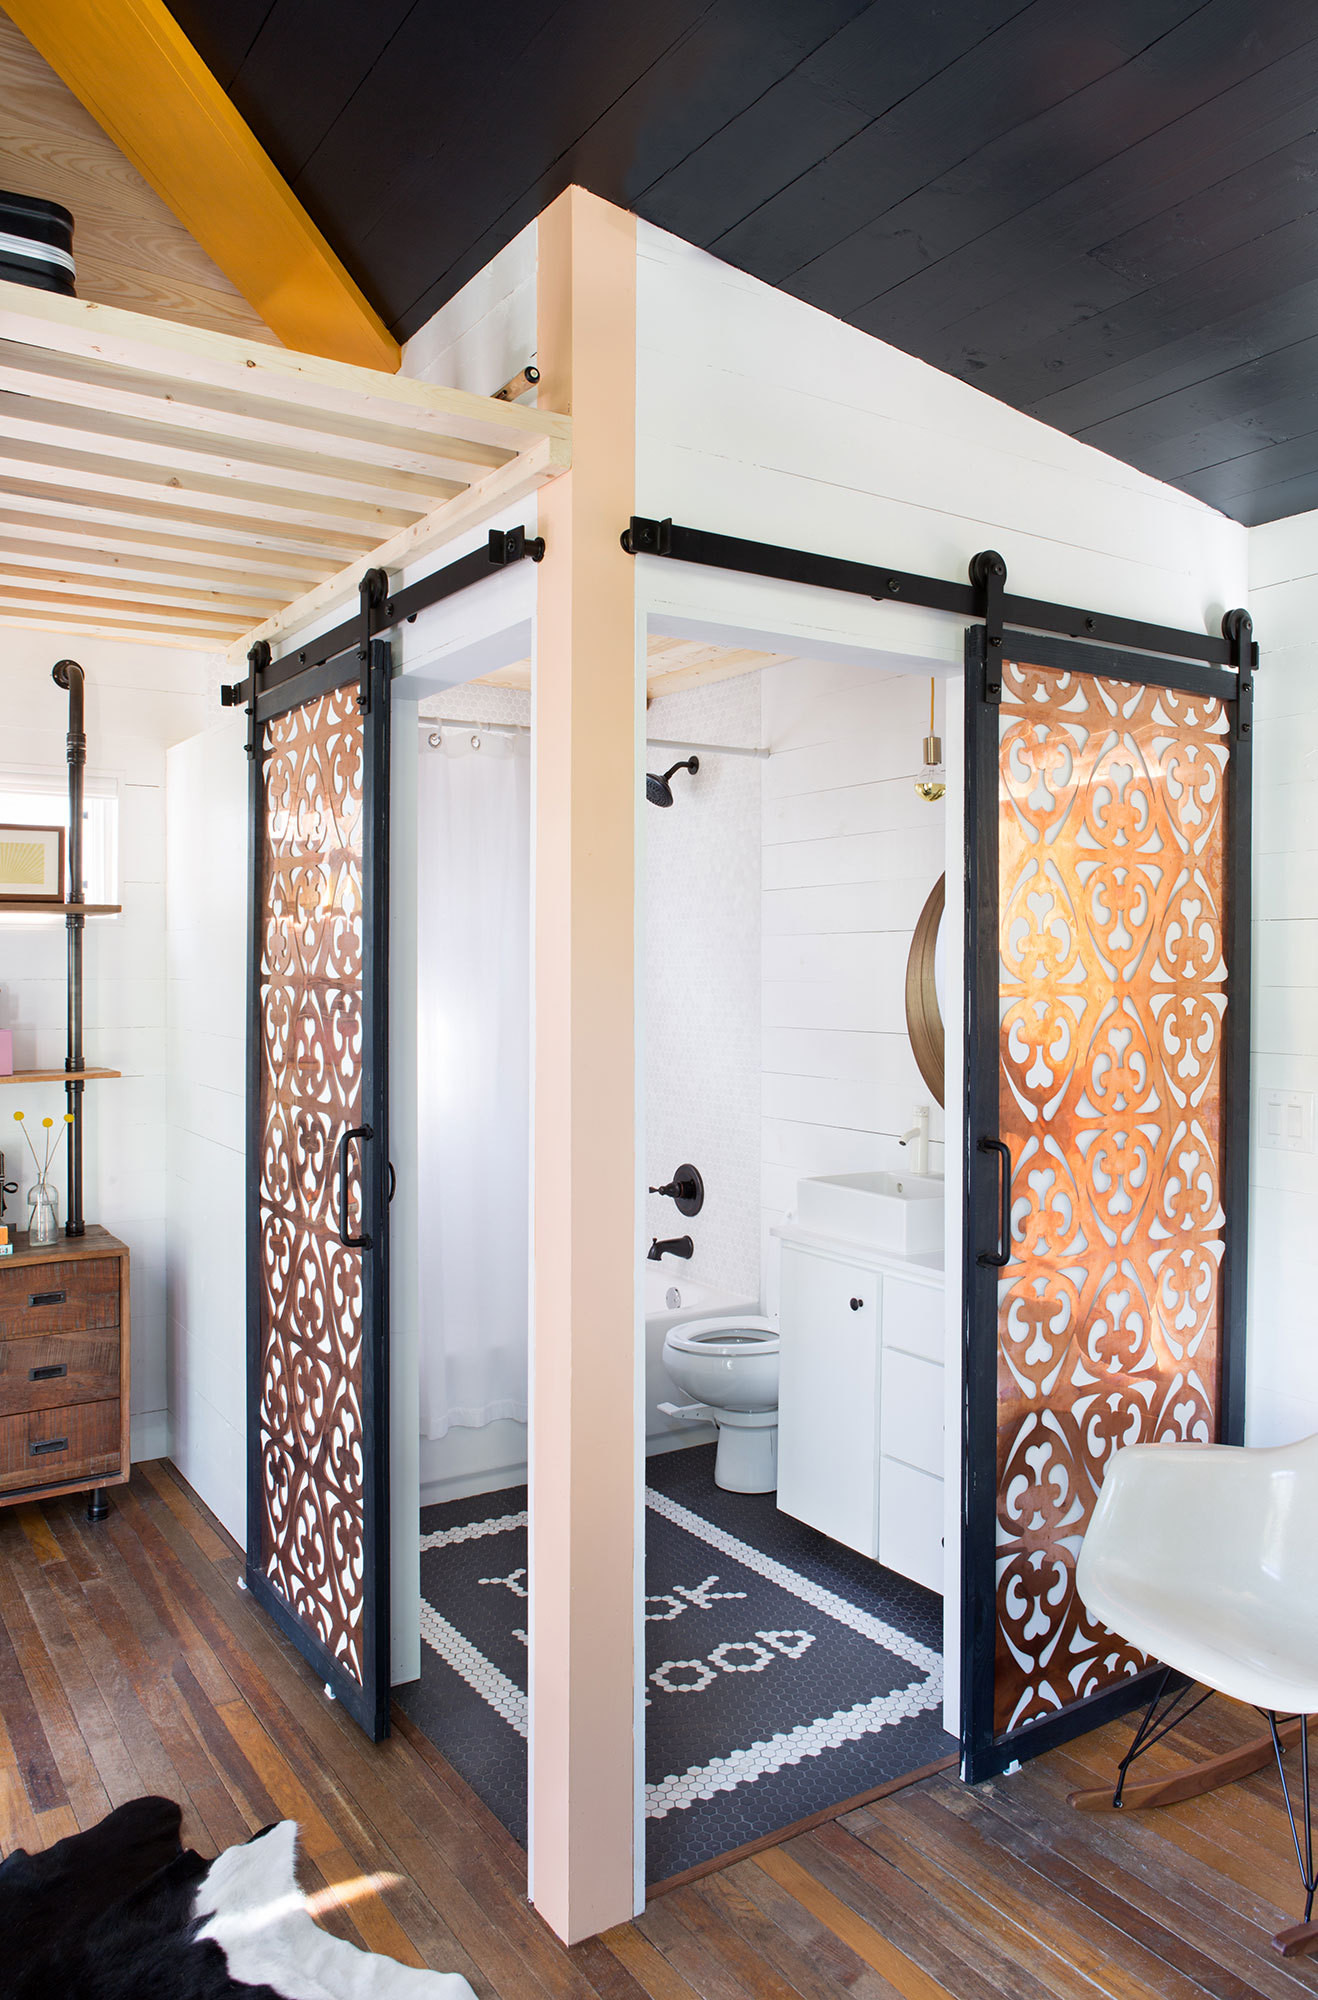 Copper Paneled Sliding Doors | Lonny Magazine Photo by Molly Winters